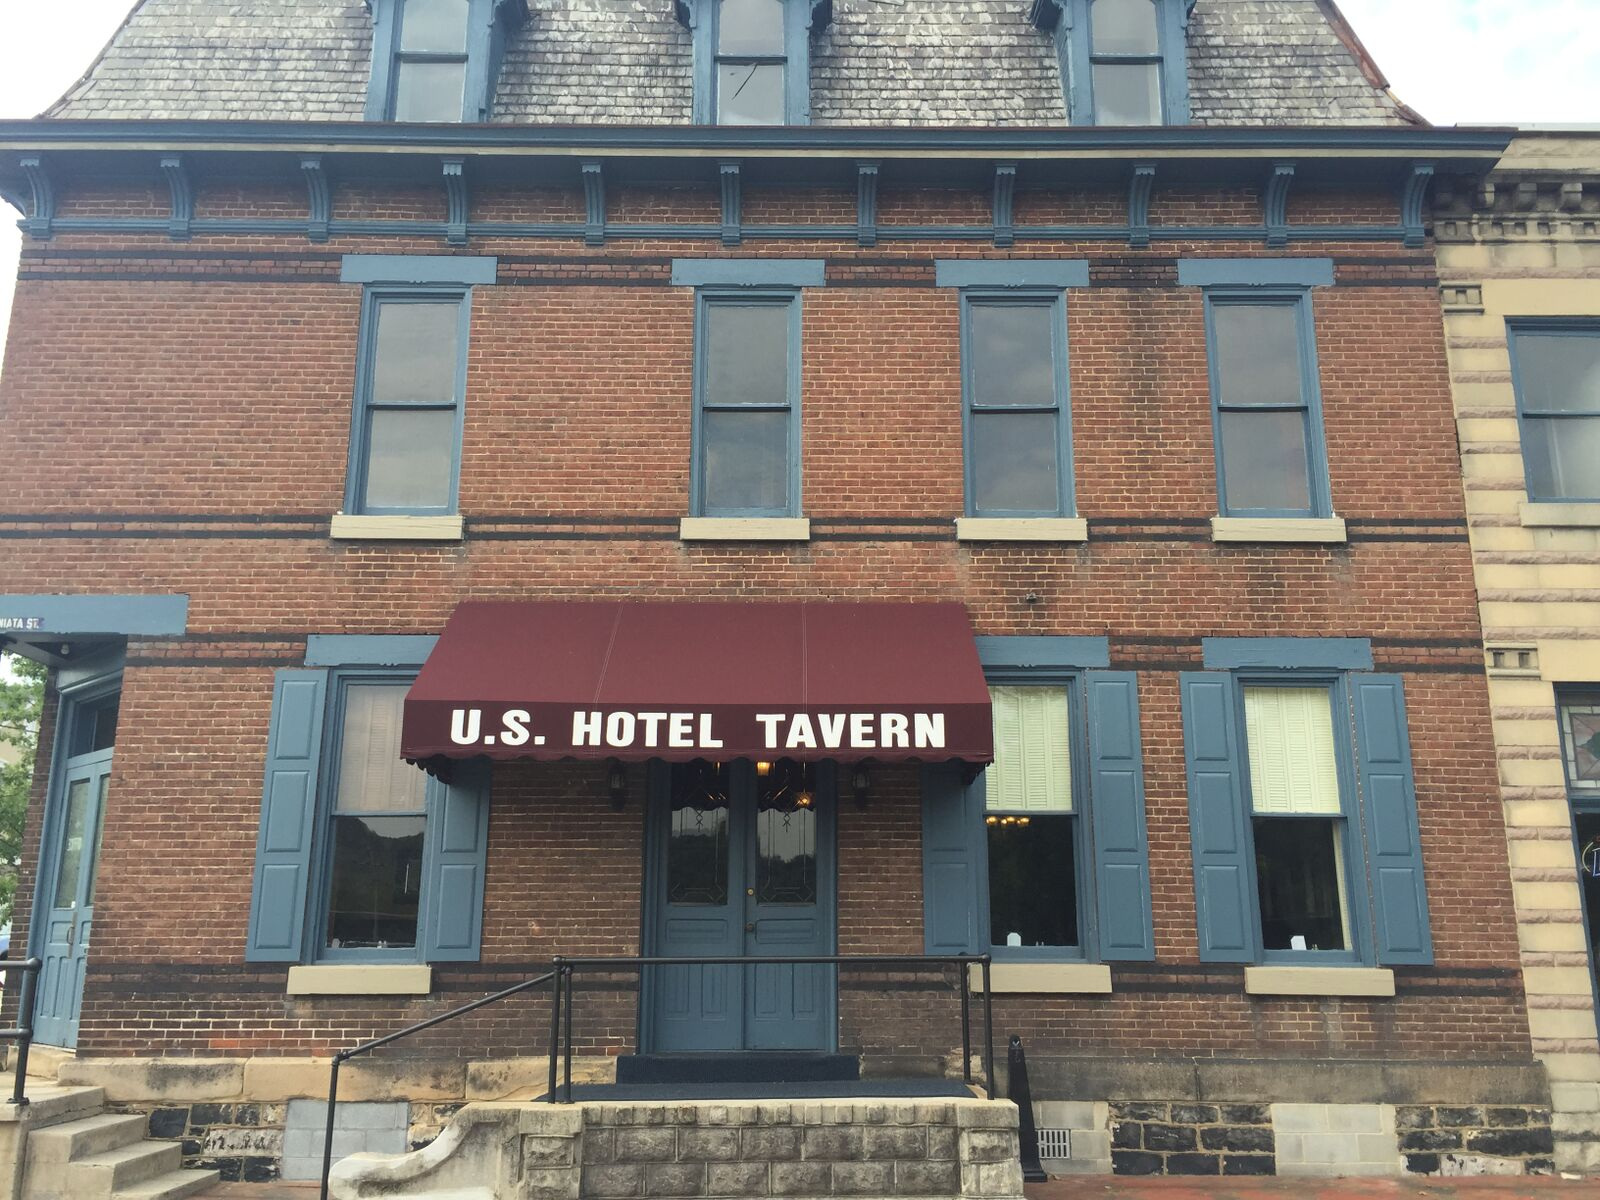 Front Awning of U.S. Hotel Tavern